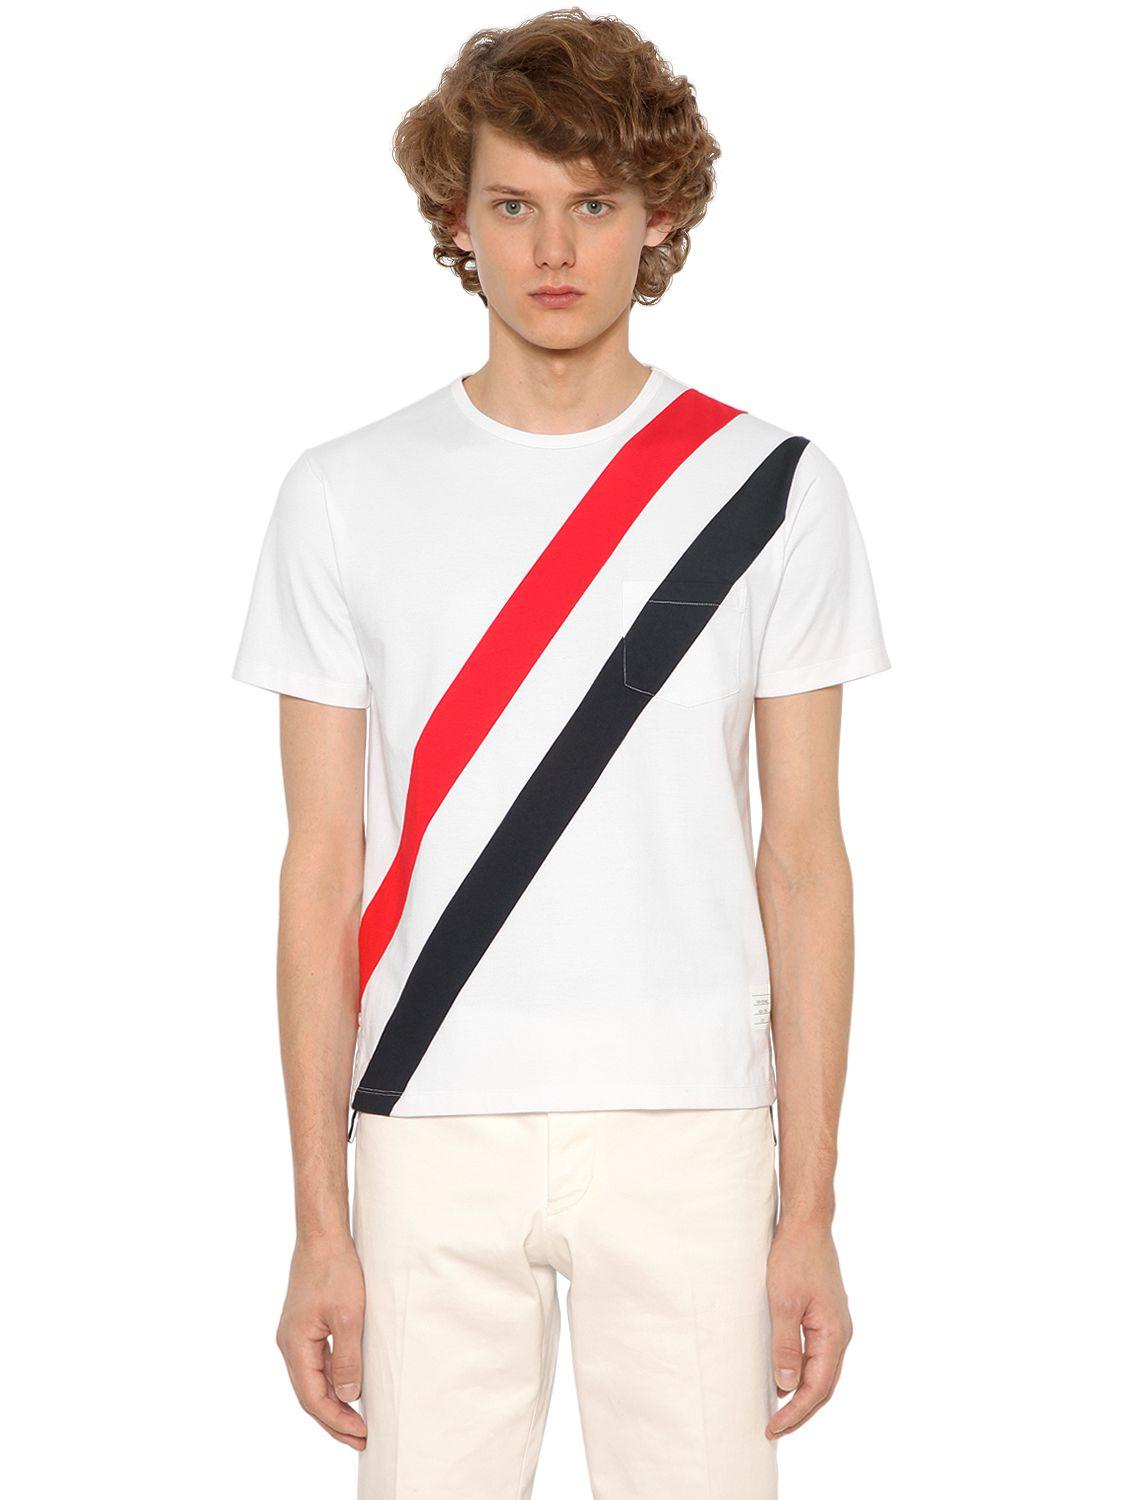 Thom browne diagonal stripes cotton jersey t shirt in for Thom browne t shirt